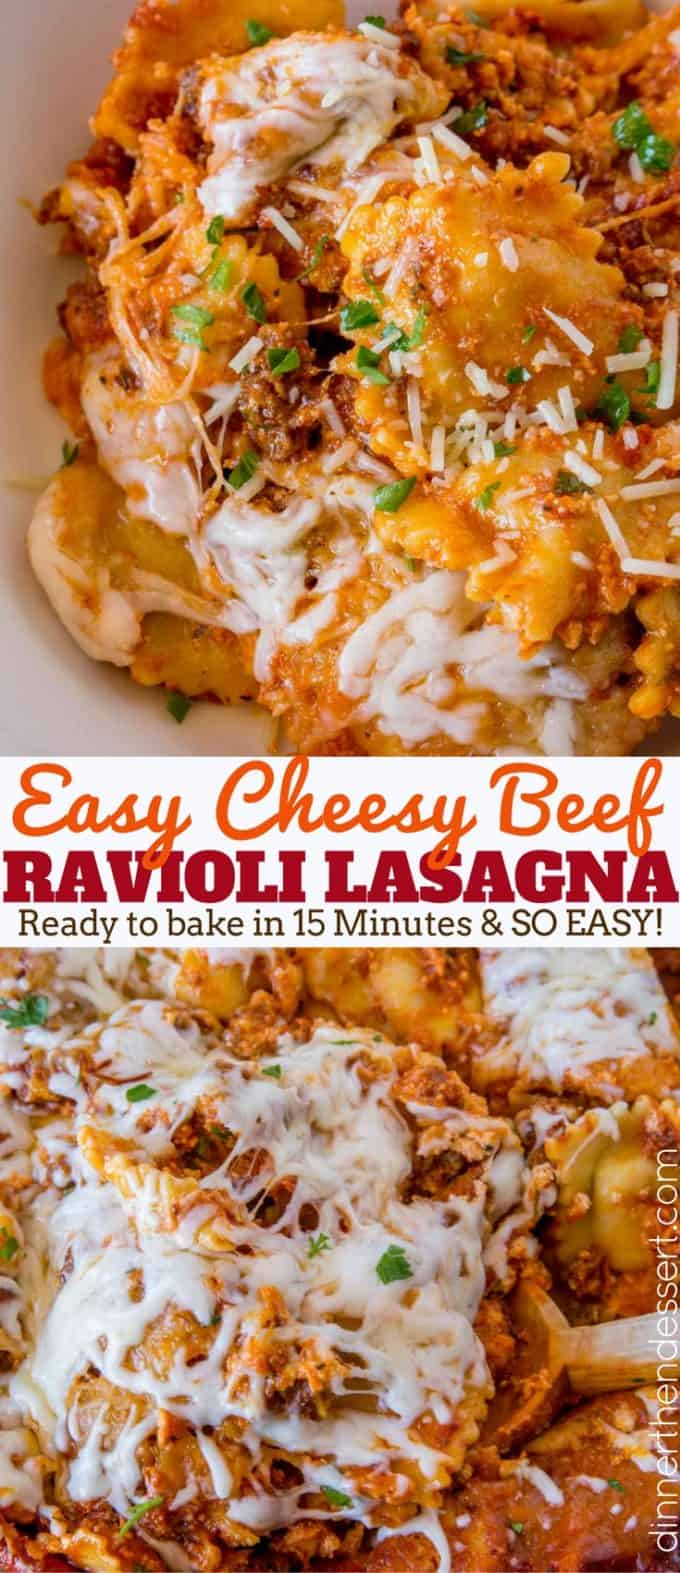 Easy Ravioli Lasagna Bake with three cheeses and ground beef is an easy weeknight meal you can prep ahead that tastes like lasagna with half the effort! #cheese #pasta #ravioli #lasagna #casserole